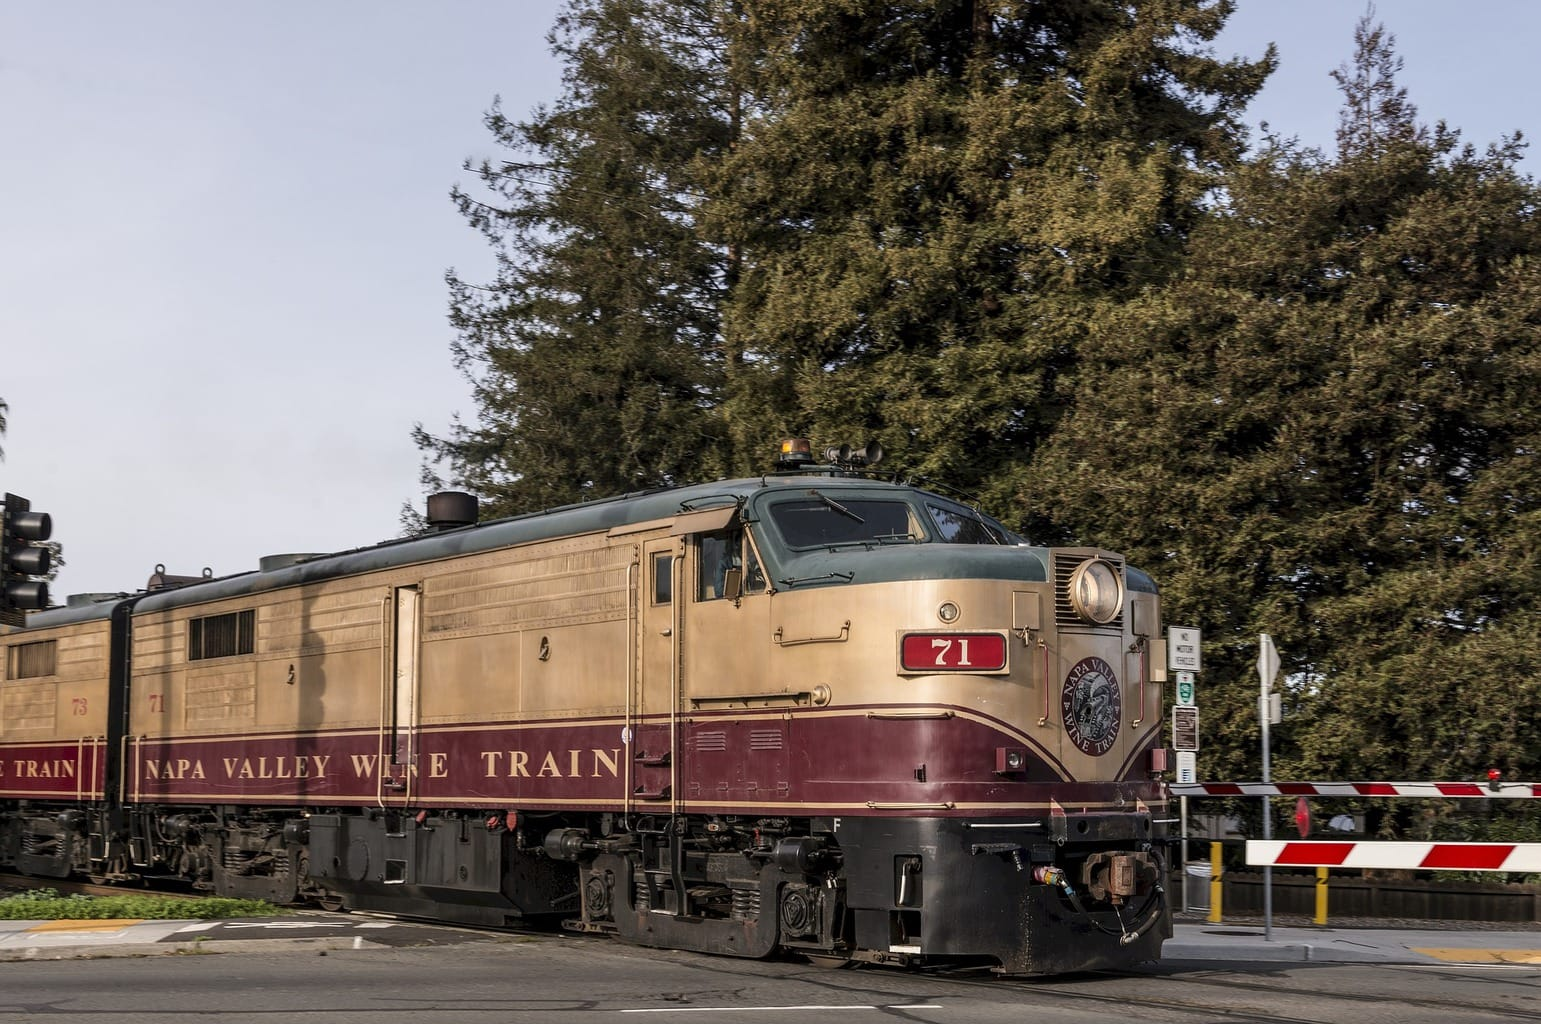 Taking the train in Napa Valley